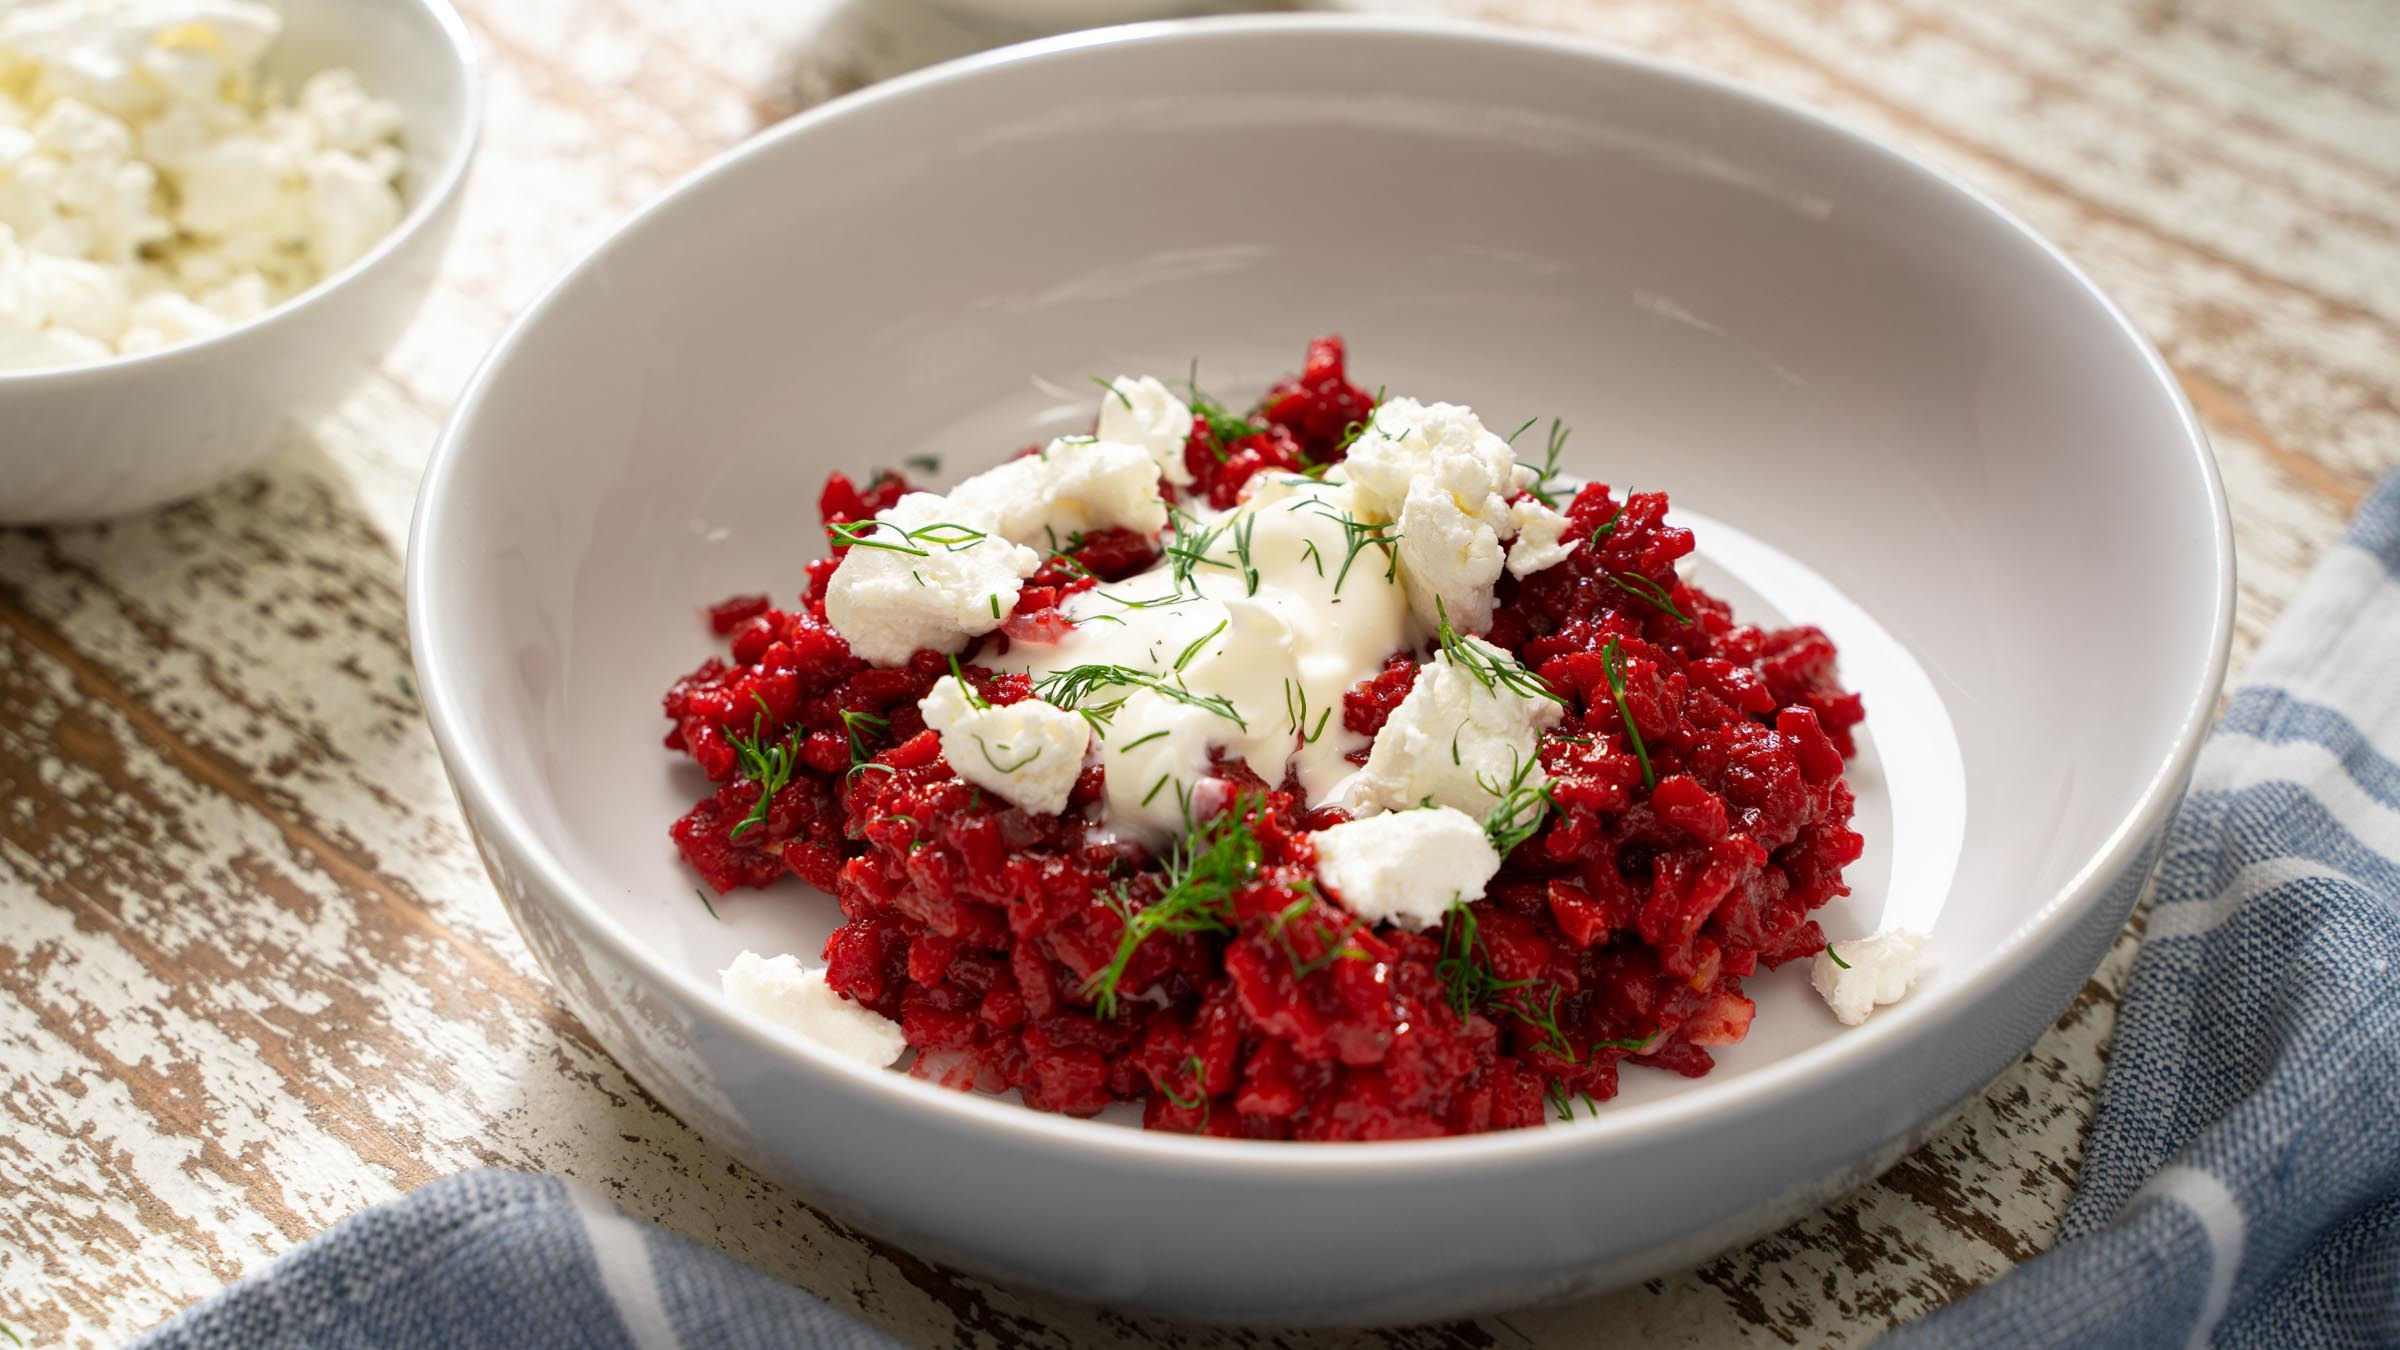 Beet & Goat Cheese Risotto